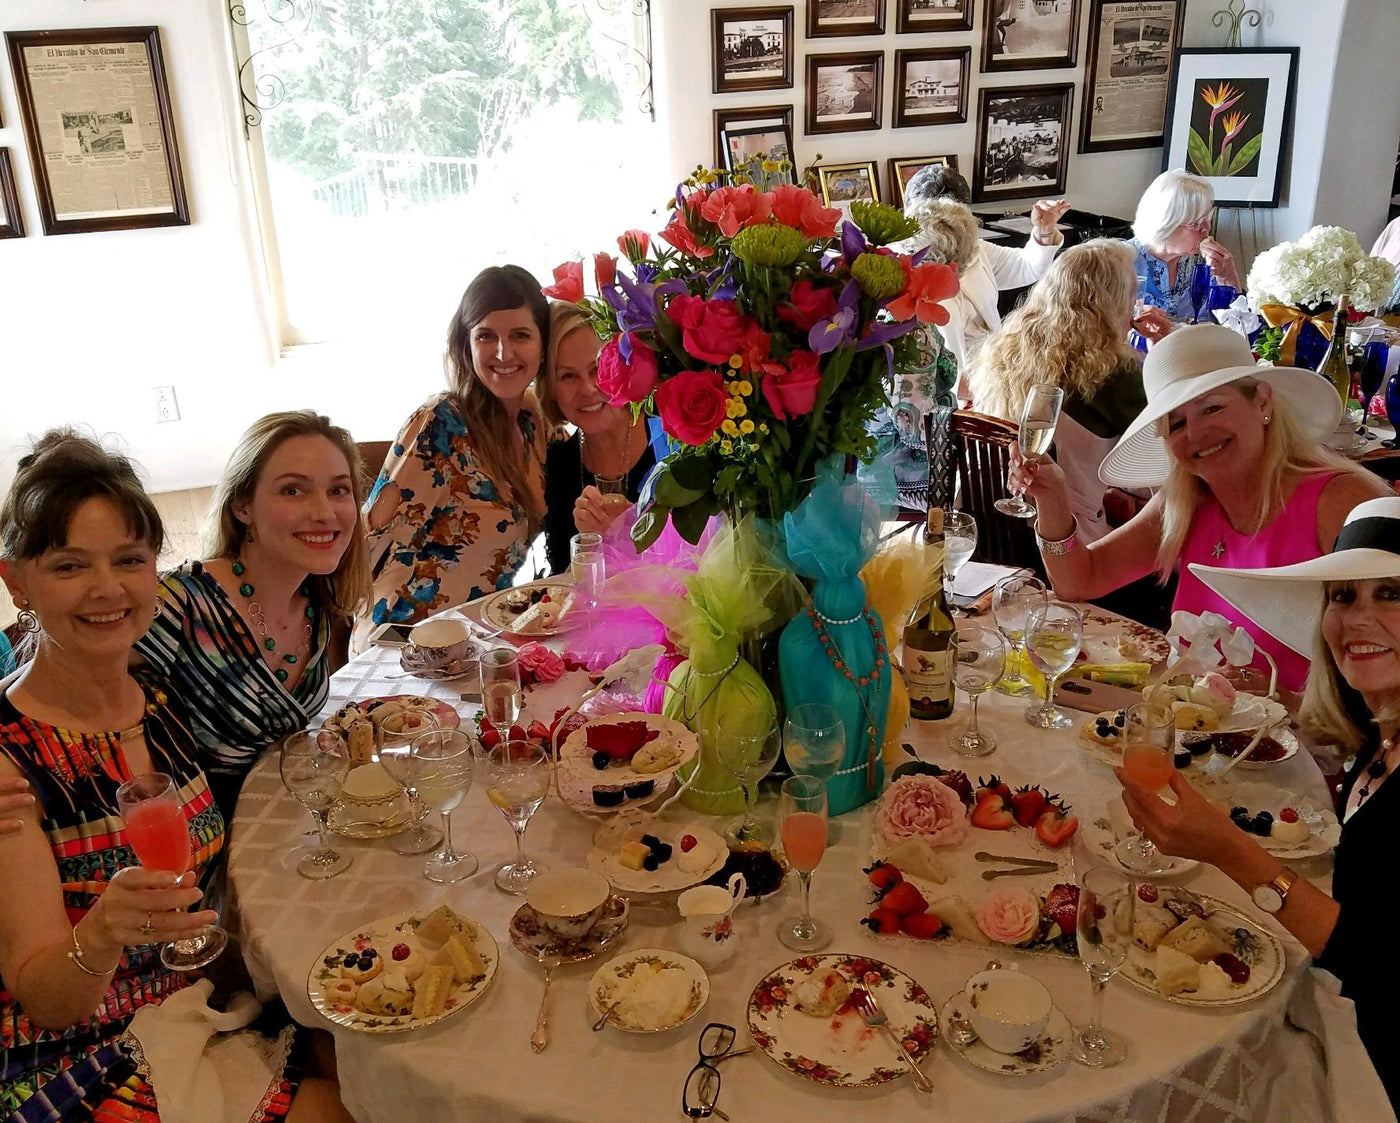 Rascal's Ladies Boutique Hosts Table at Casa Romantica's Mary Colby Tea Party Fundraiser.